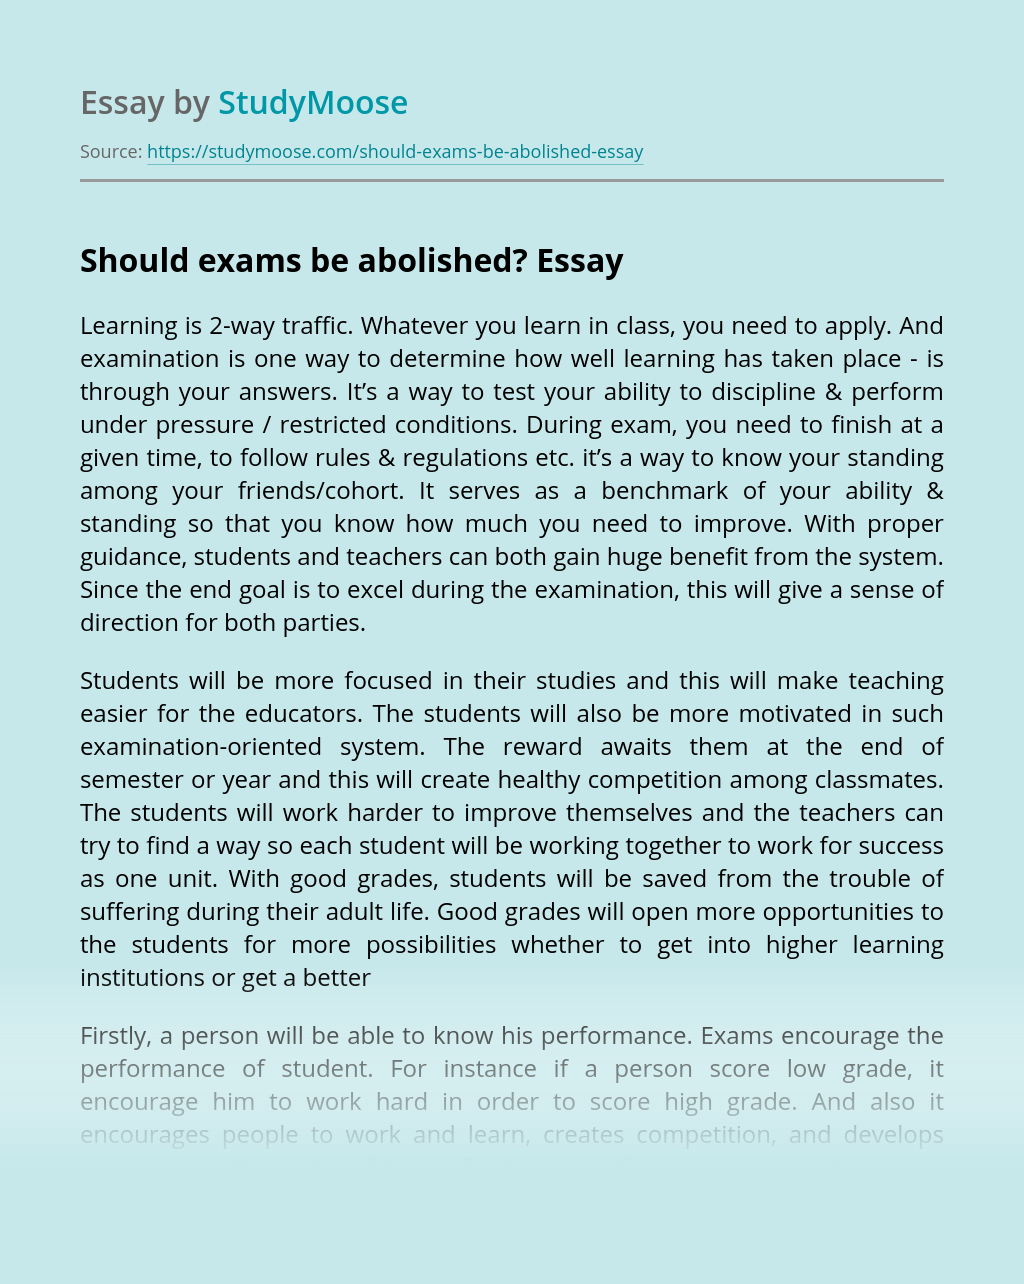 Should Exams be Abolished?